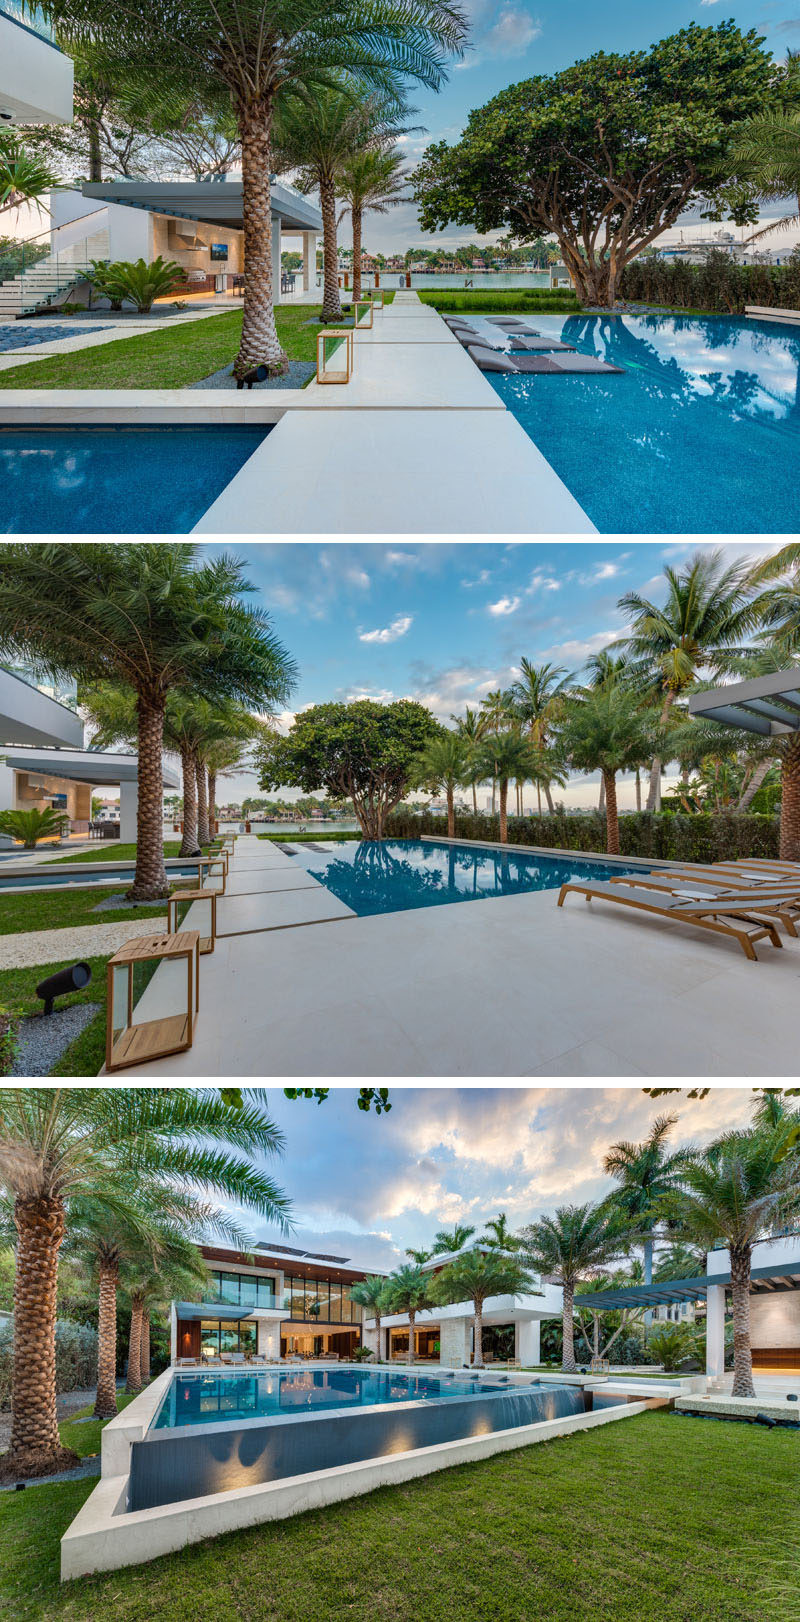 A backyard designed around a giant Banyan tree, has an over-sized infinity-edge pool, several reflecting ponds, and lounge seating.